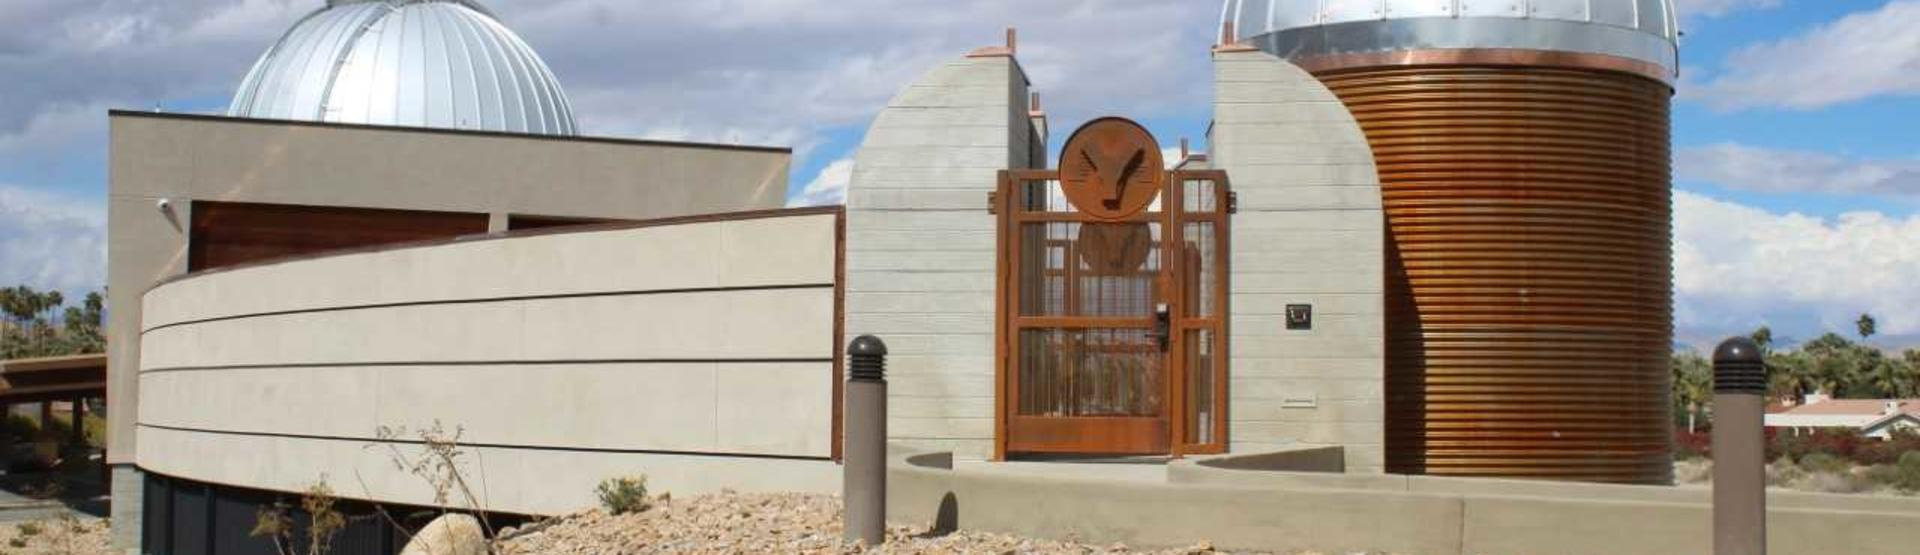 Rancho Mirage Observatory